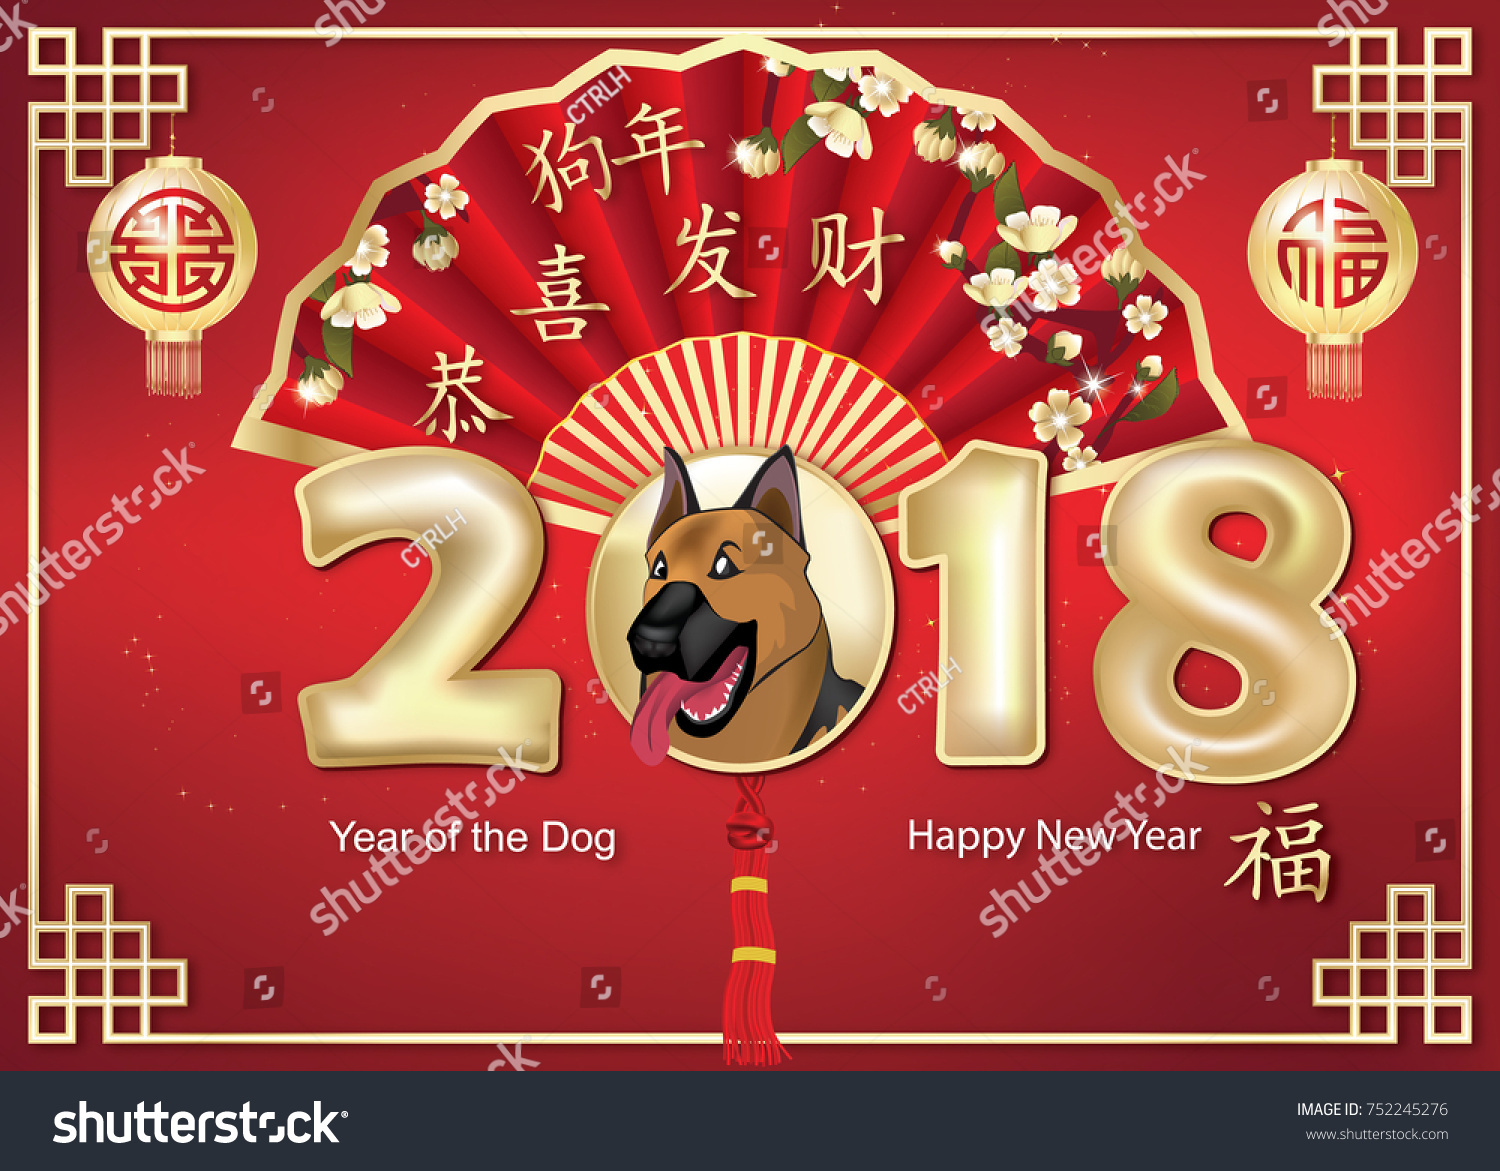 happy chinese new year 2018 greeting card with text in chinese and english